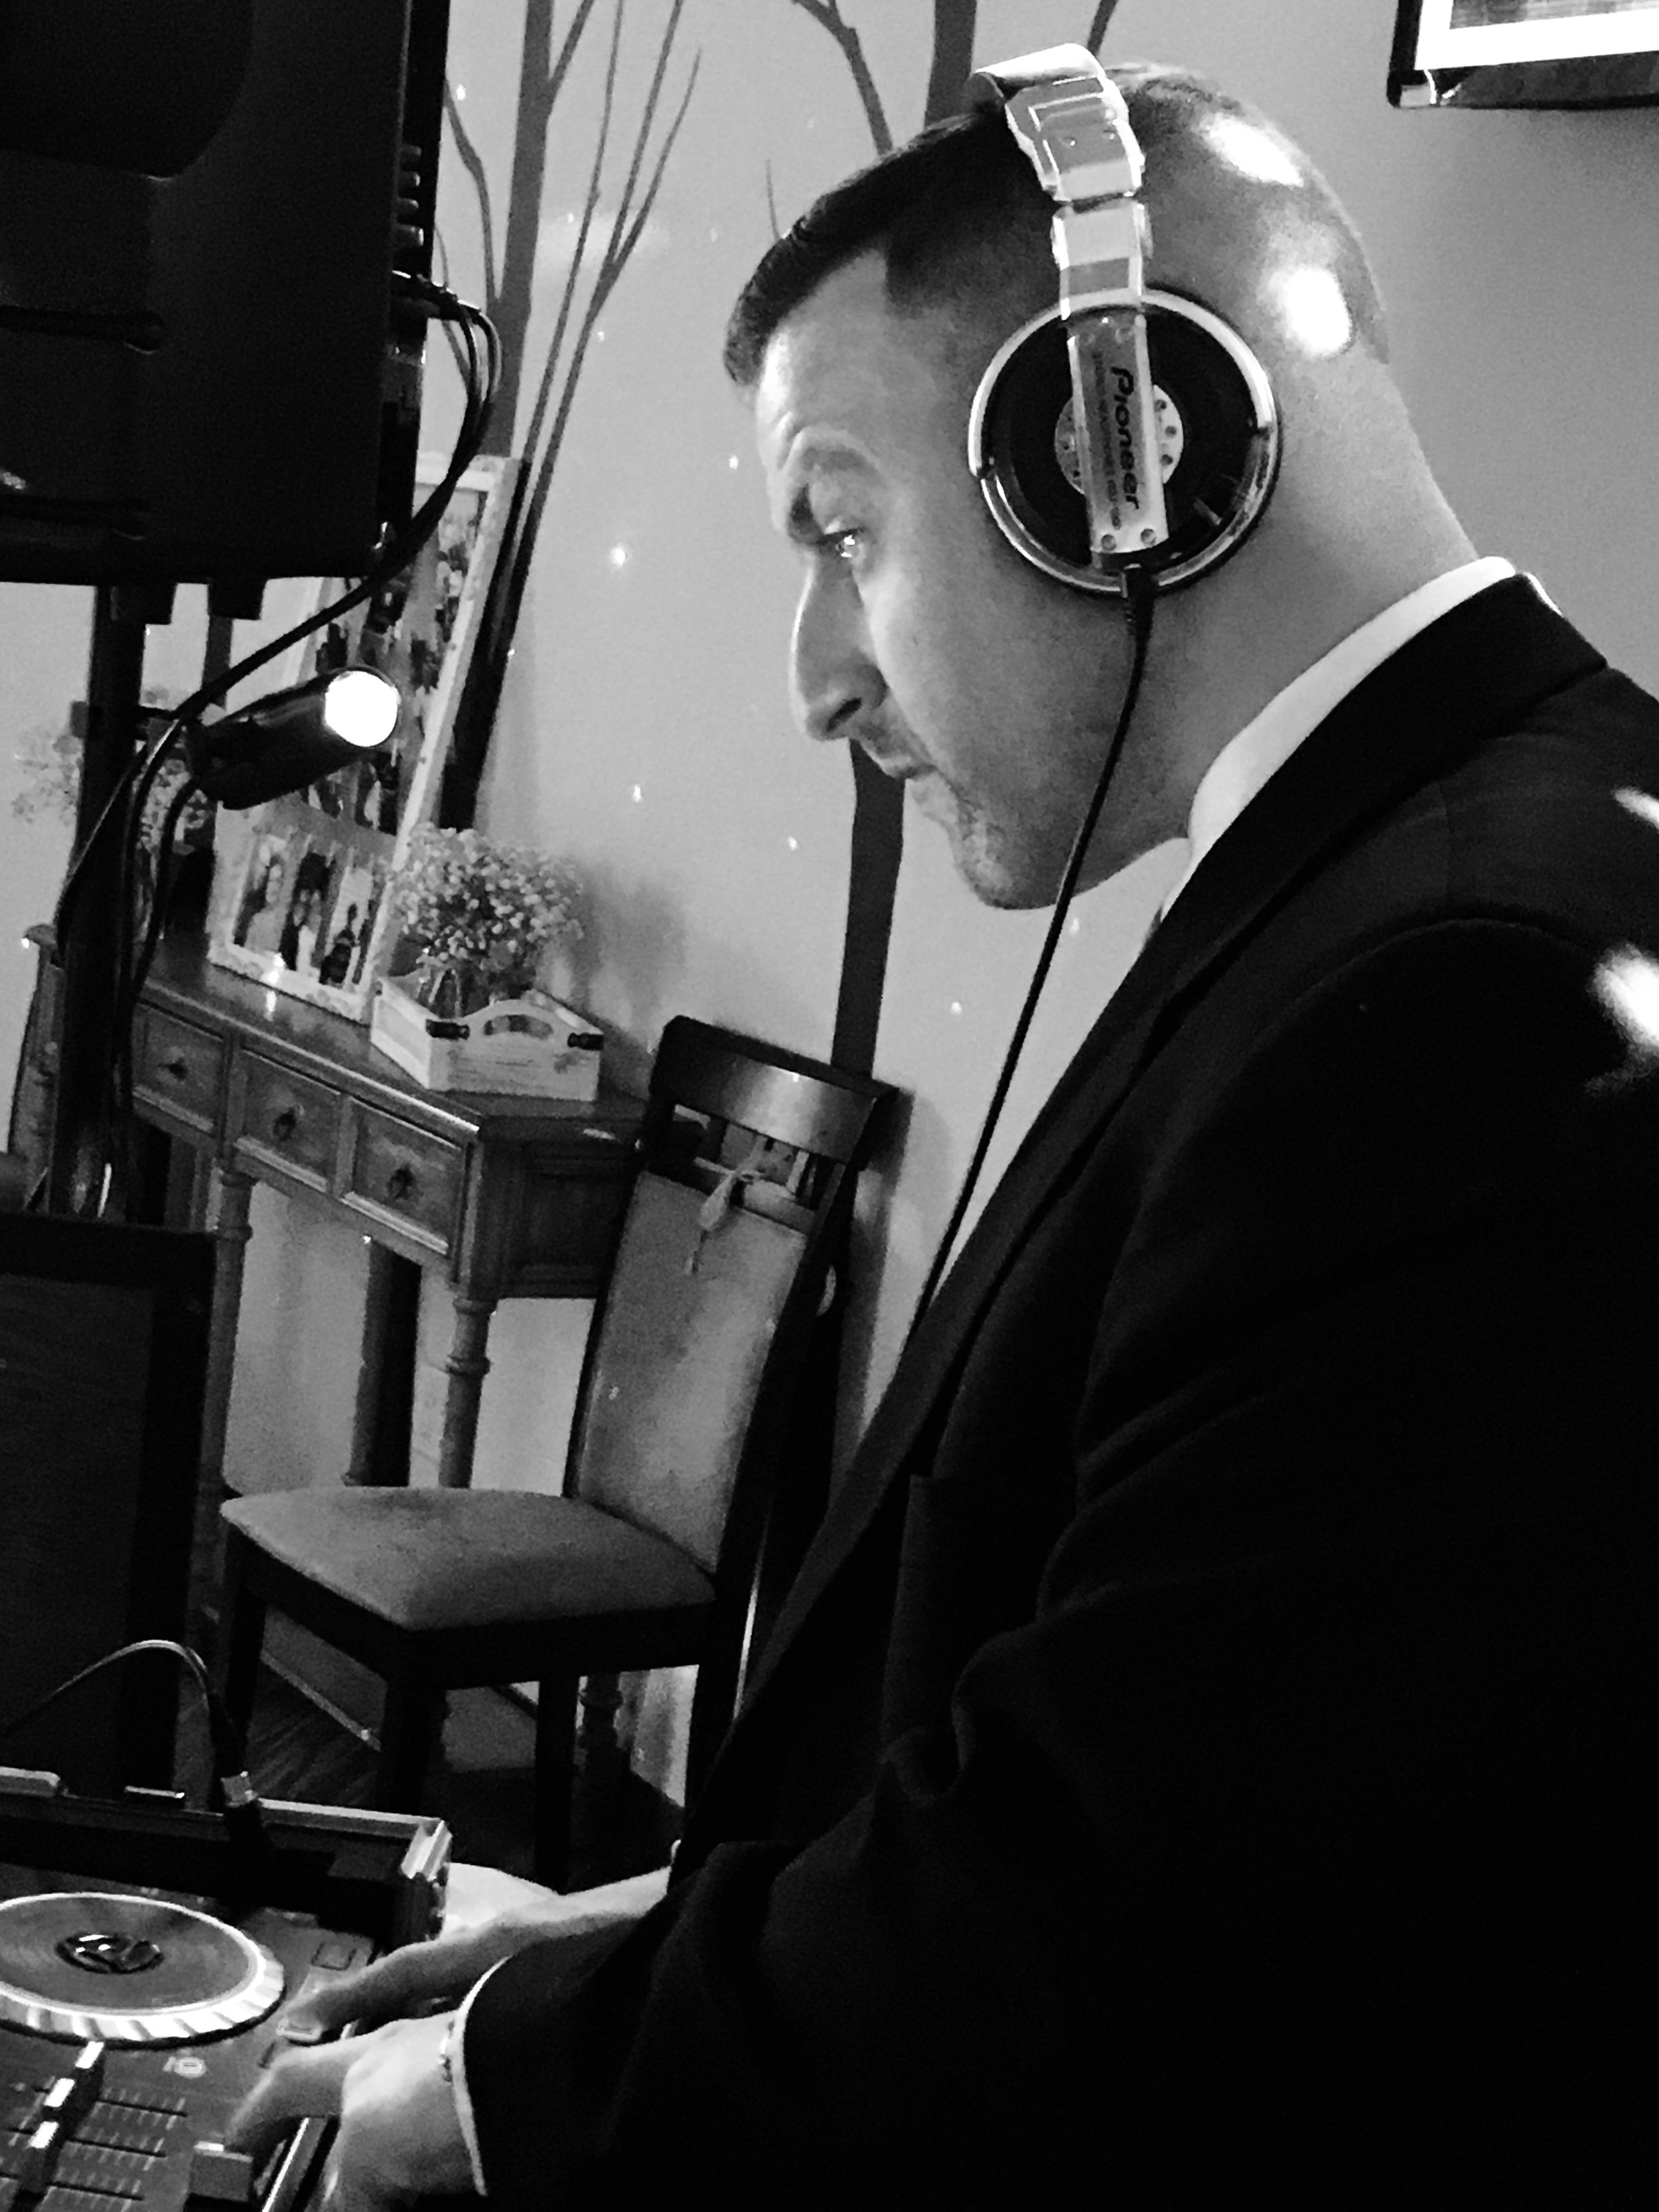 Experience You Can Count On - Jon started his professional DJ career in 2000 working for one of the top rated DJ companies in Kansas City. While there he learned that a mobile DJ is not just about playing good music, but being the master of ceremonies. A DJ is the orchestrator of a great event, the entertainer, the one that keeps the timeline, the announcer, and the master of a good time.